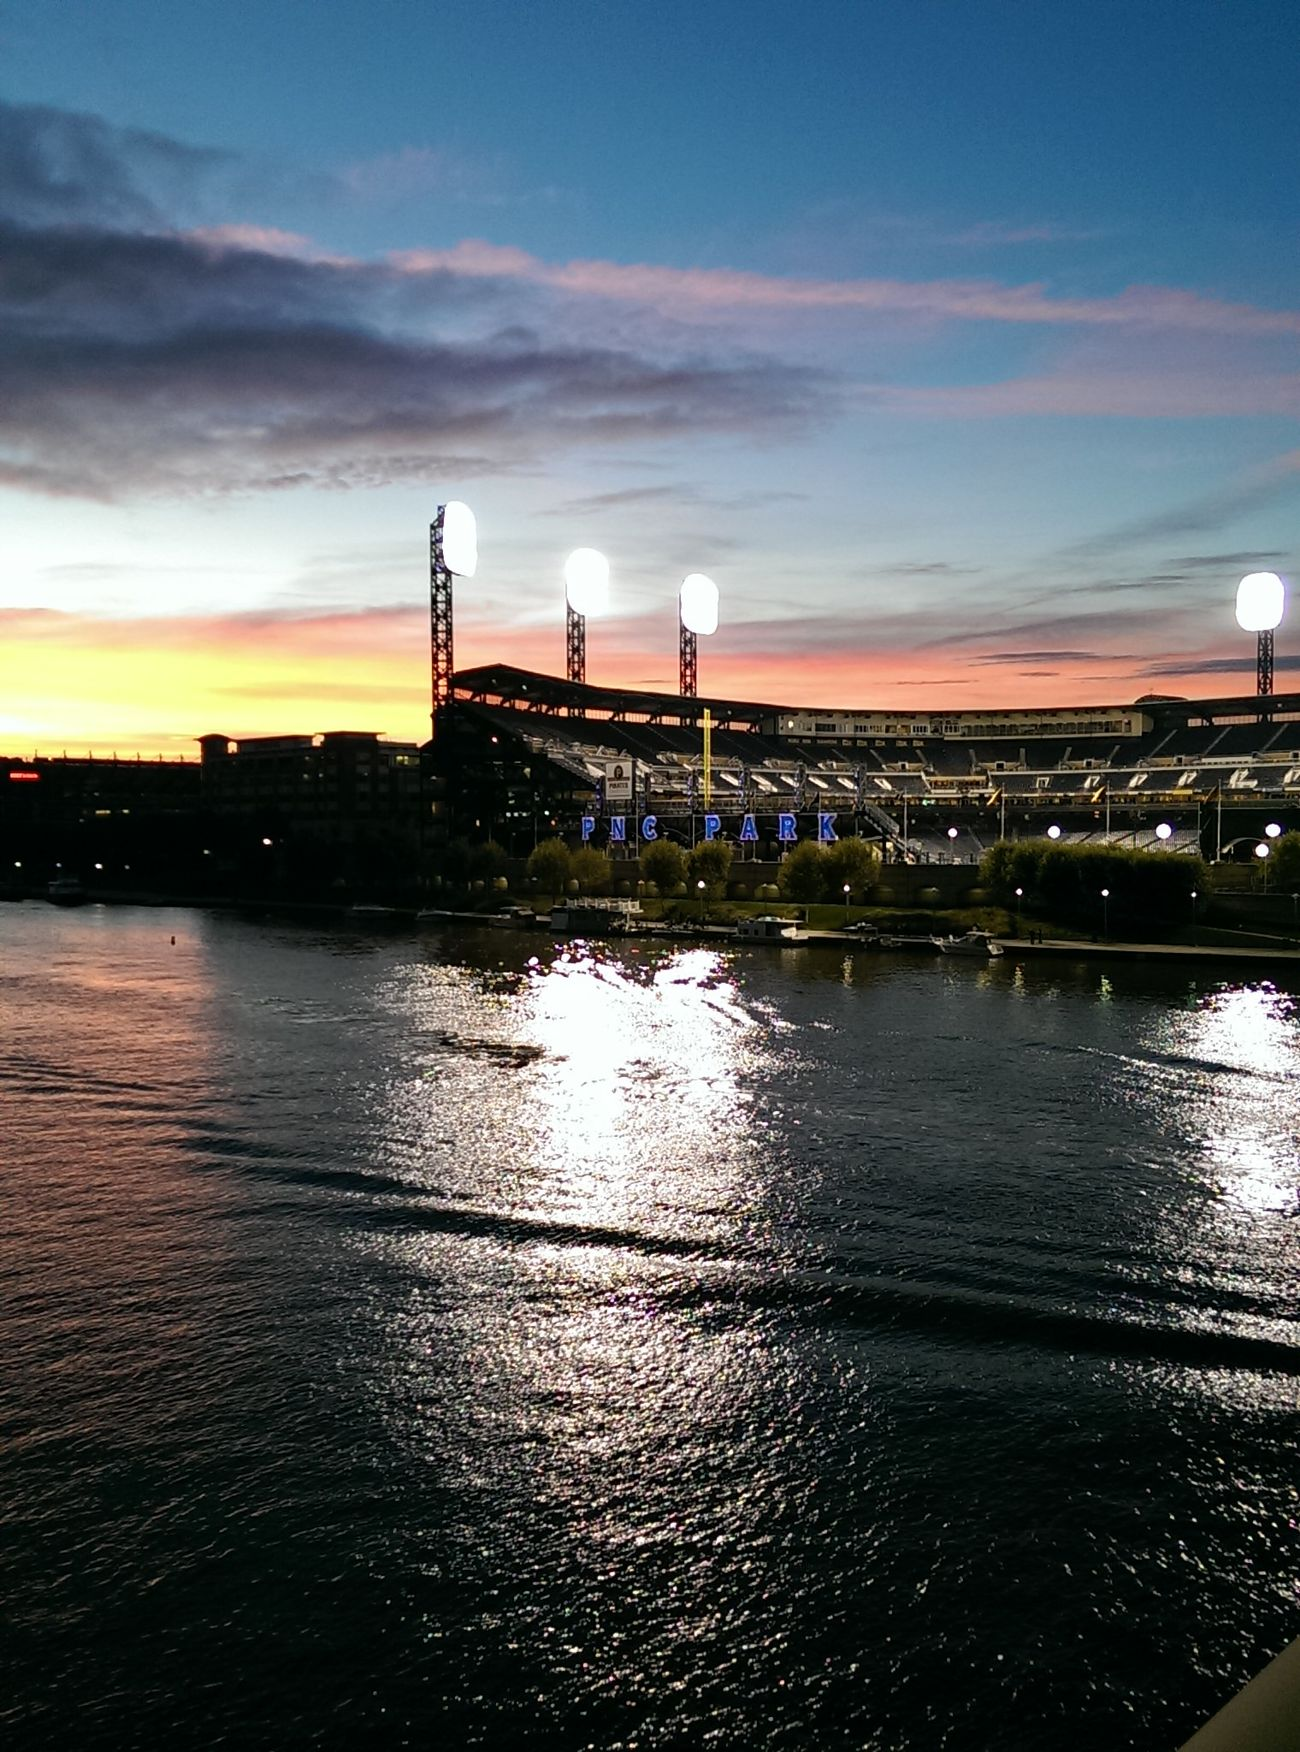 Pnc Park last game of the 2015 season Pittsburghpirates PNC Park Summer First Eyeem Photo